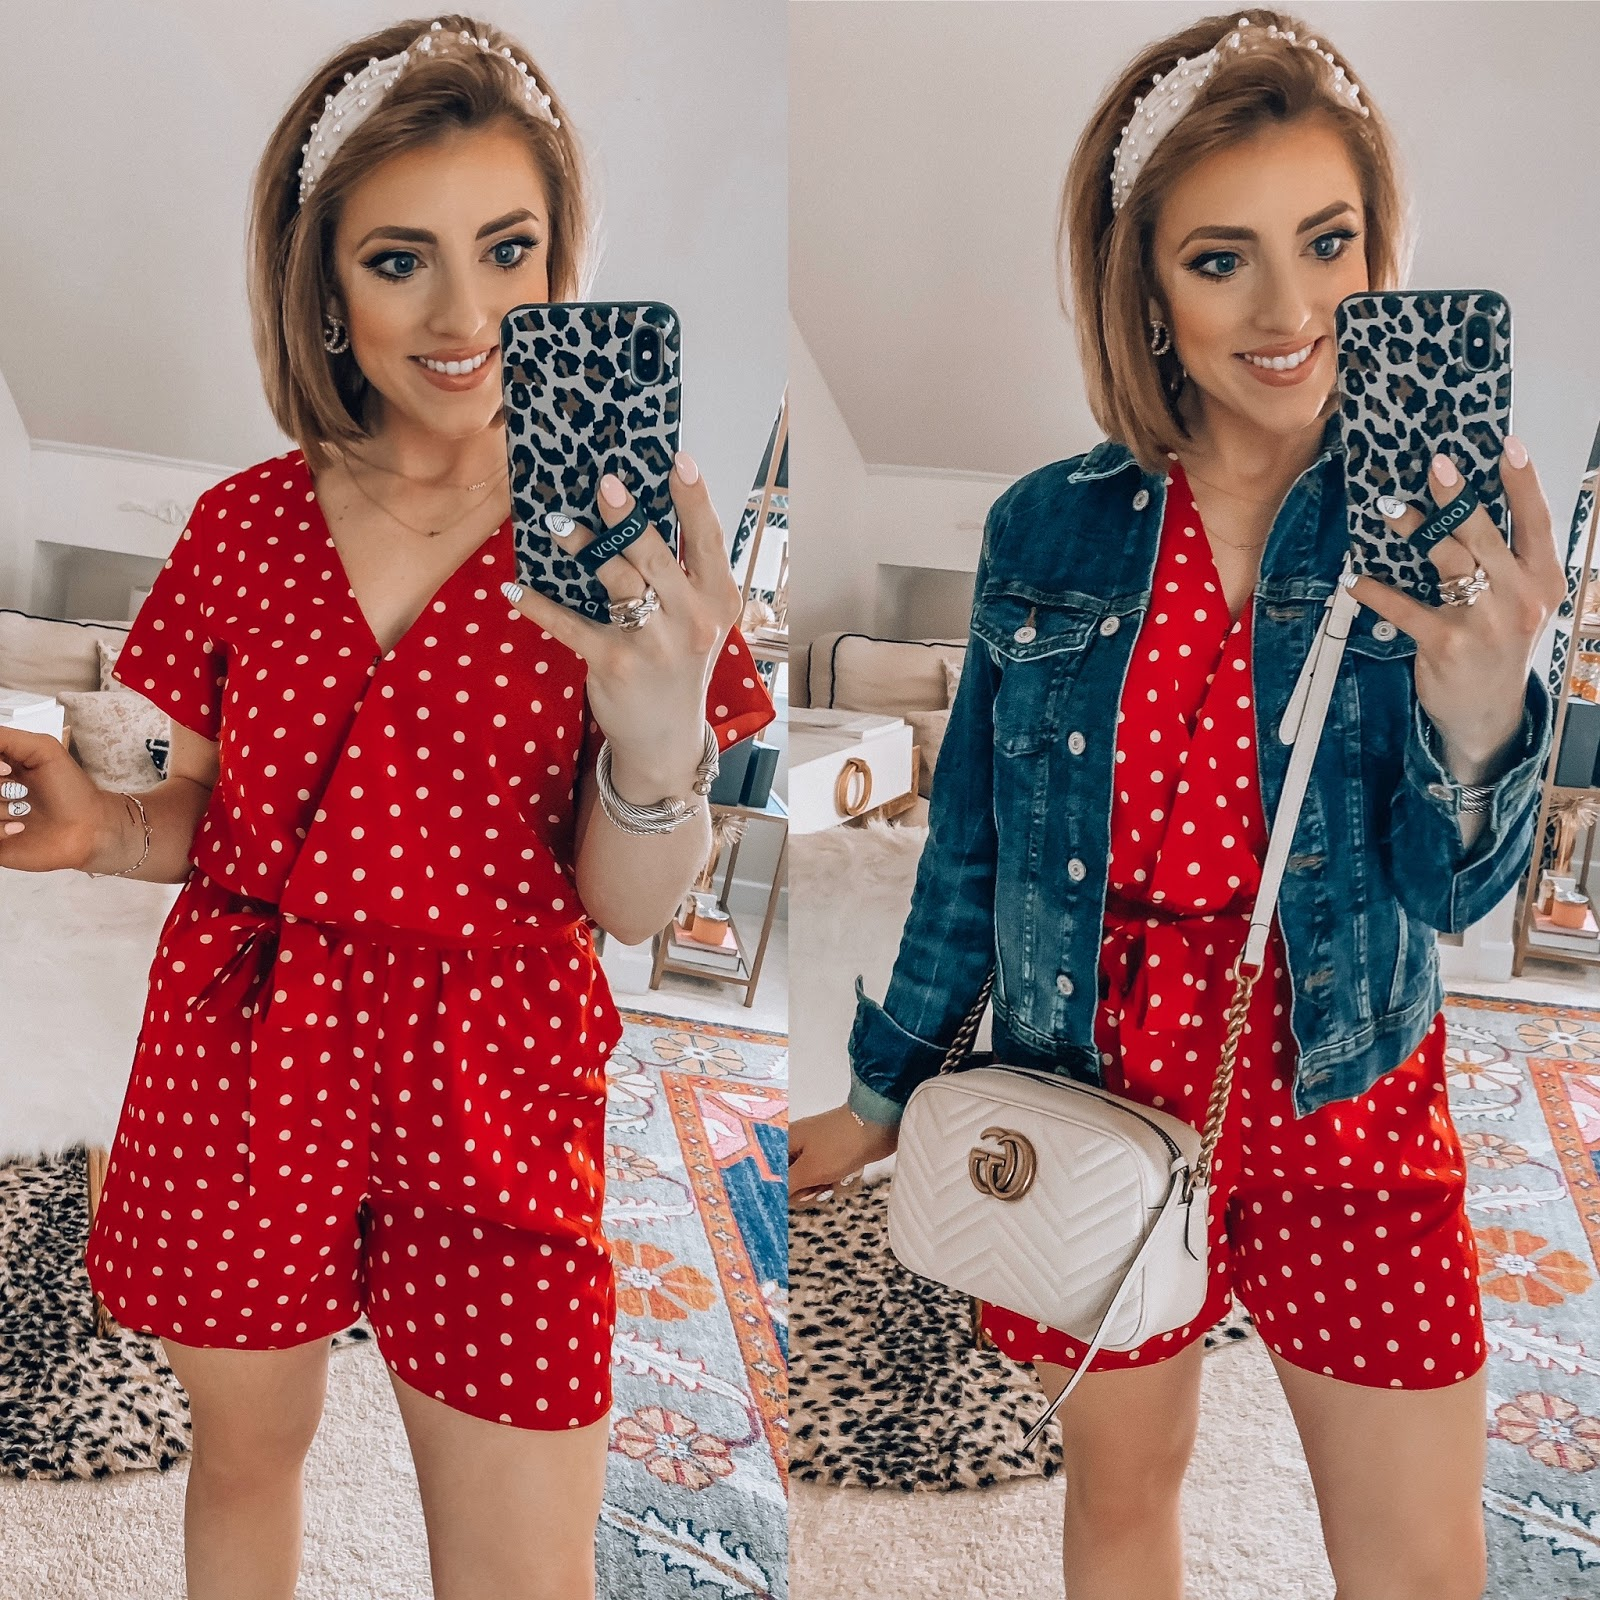 Recent Amazon Finds - Transitional Sweaters, Spring Transition Pieces, Spring Pieces, Swimsuits and More - Something Delightful Blog  #AmazonFinds #AmazonFasion #AffordableFashion #Spring2020